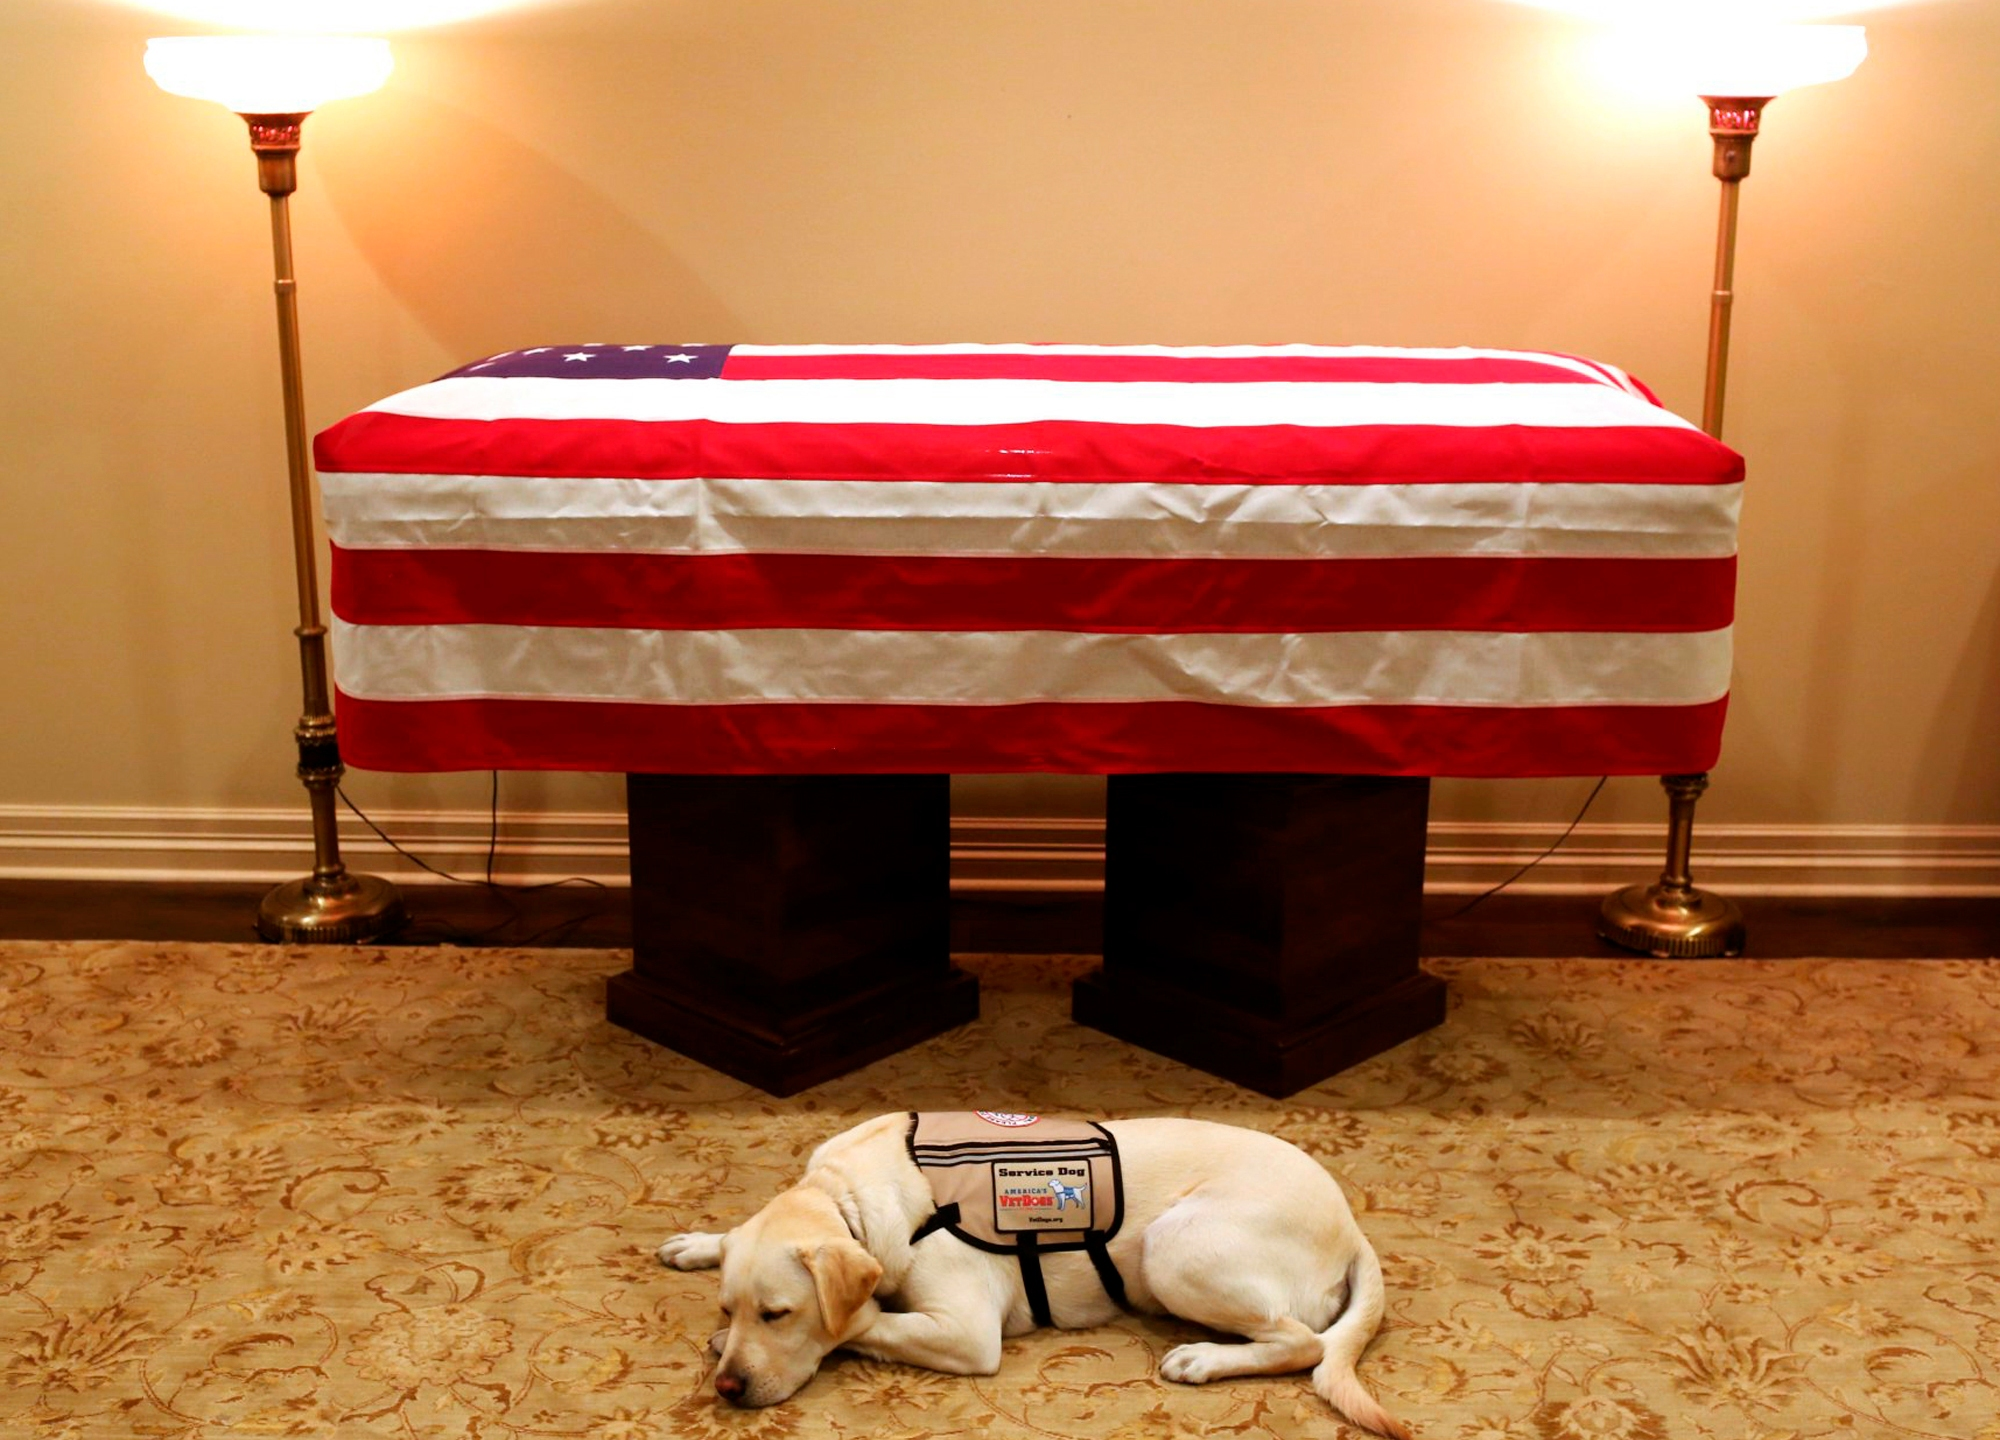 George_HW_Bush_Service_Dog_13561-159532.jpg53779287